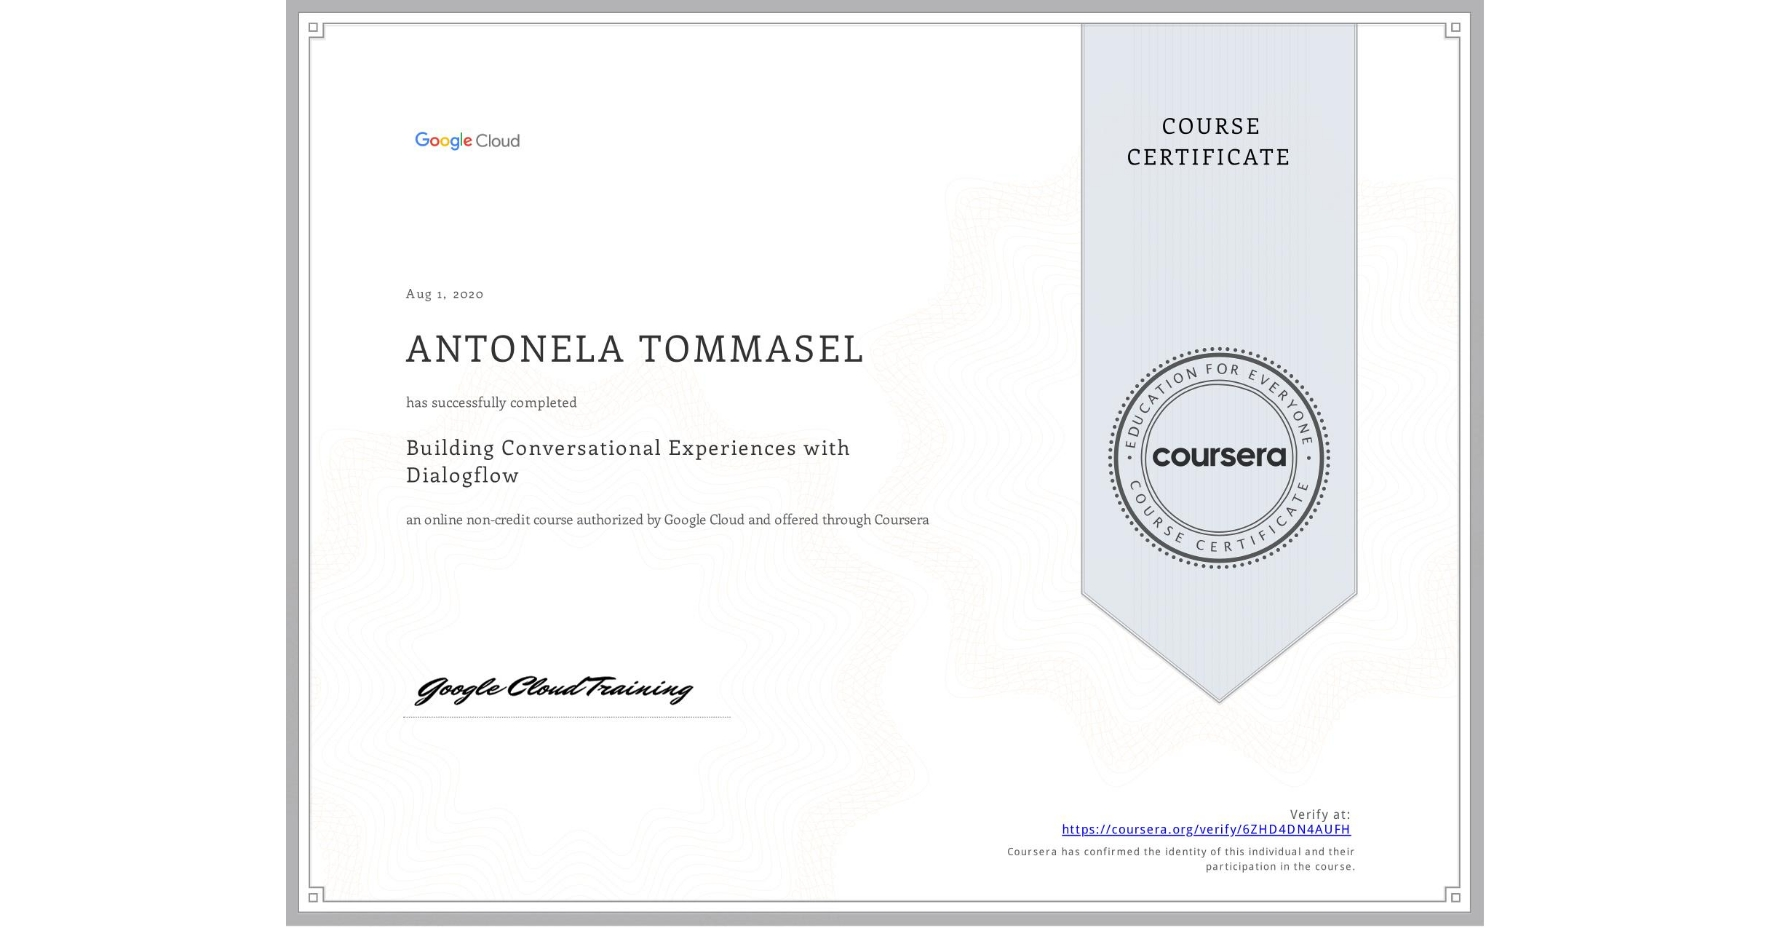 View certificate for Antonela Tommasel, Building Conversational Experiences with Dialogflow, an online non-credit course authorized by Google Cloud and offered through Coursera